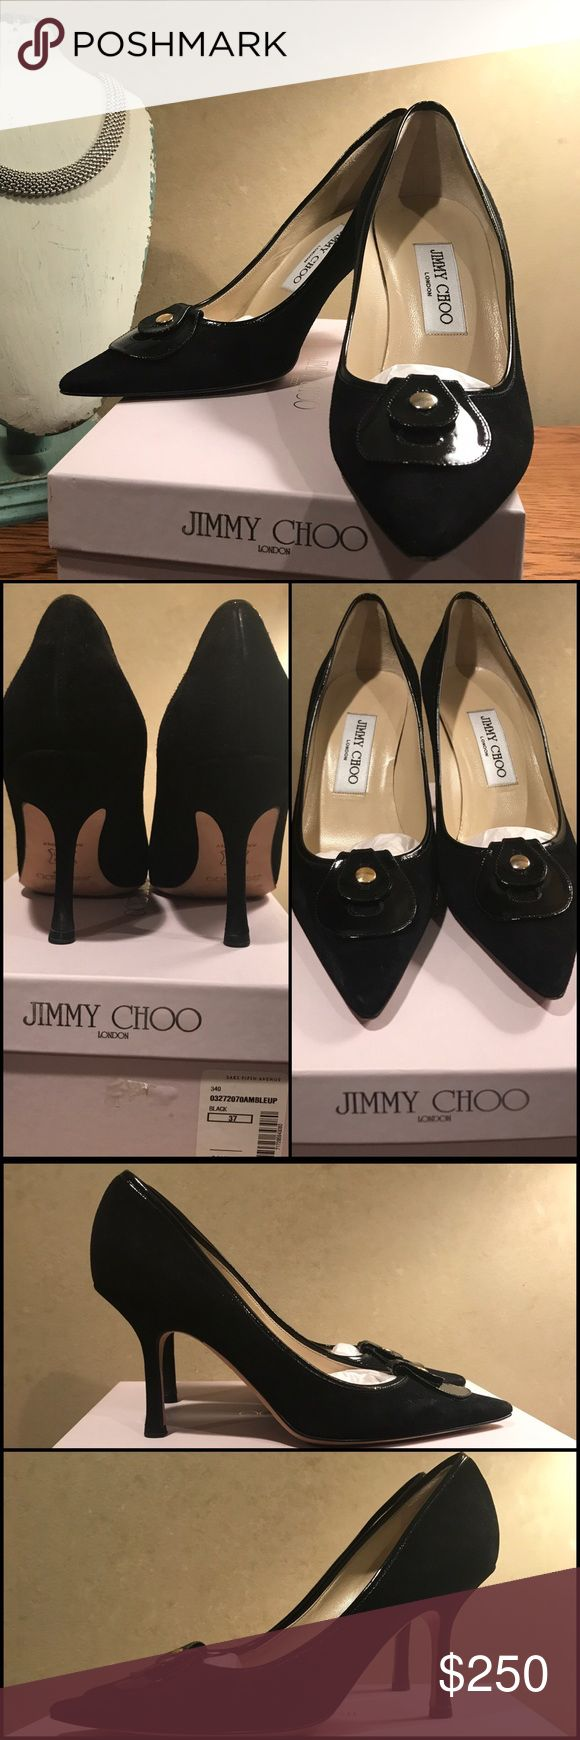 Jimmy Choo - Black Leather & Suede Pumps Jimmy Choo // Black Suede & Patent Leather heels w/ gold hardware detail. Worn ONLY Once, only evidence of which can be seen on bottom soles. Size: 37 (7US). Comes with original dust bag and box.                          Original retail value printed on box, in the listing I account for the 7.25% sales tax. Purchased from Saks Fifth Avenue and meticulously cared for.   Not eligible for bundle discount. Jimmy Choo Shoes Heels